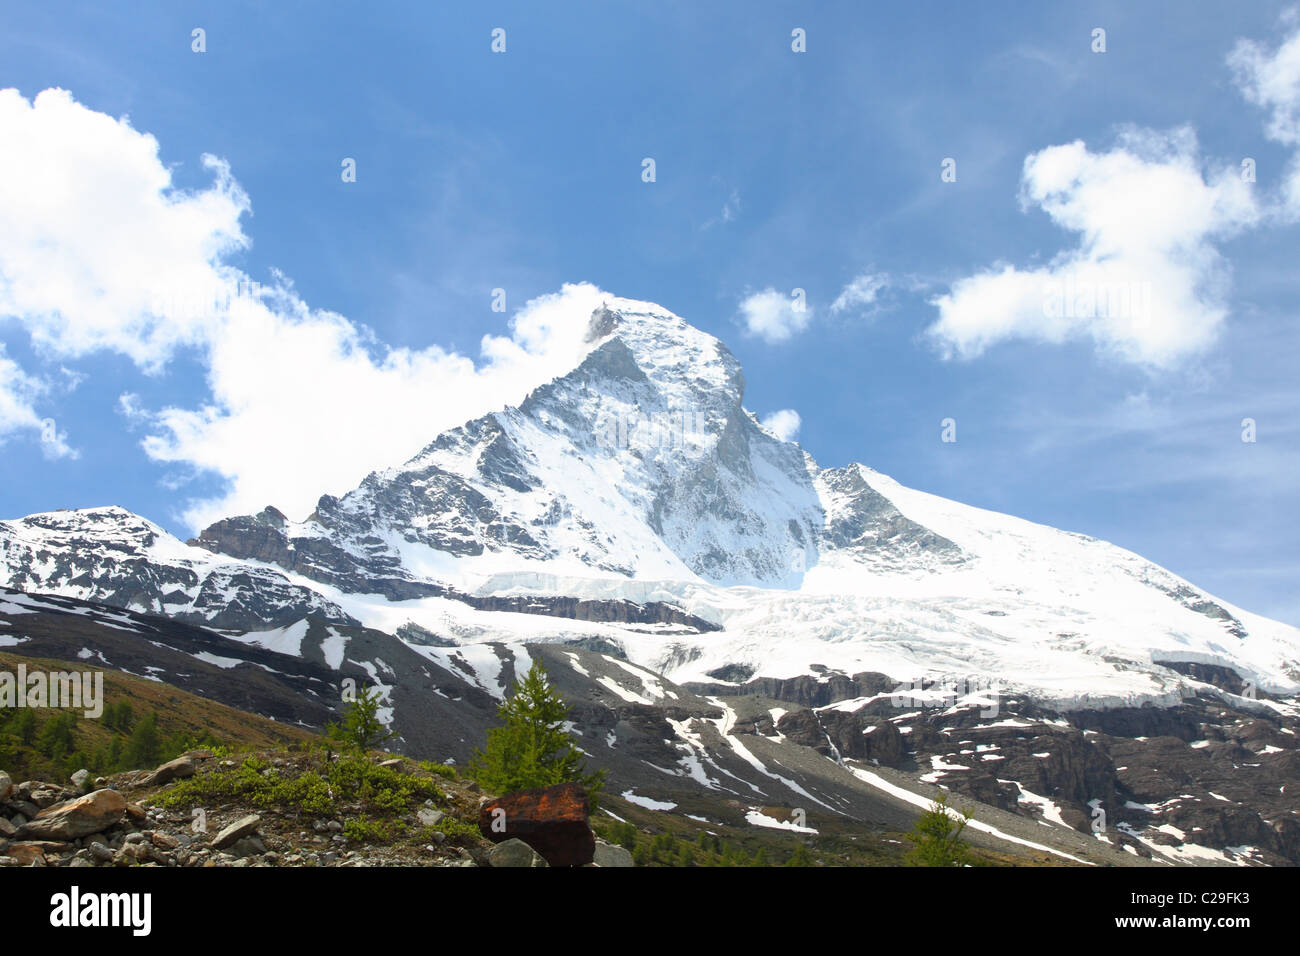 famous swiss iconic mountain Matterhorn rising snow covered from bare grounds seen from an unusual angle - Stock Image